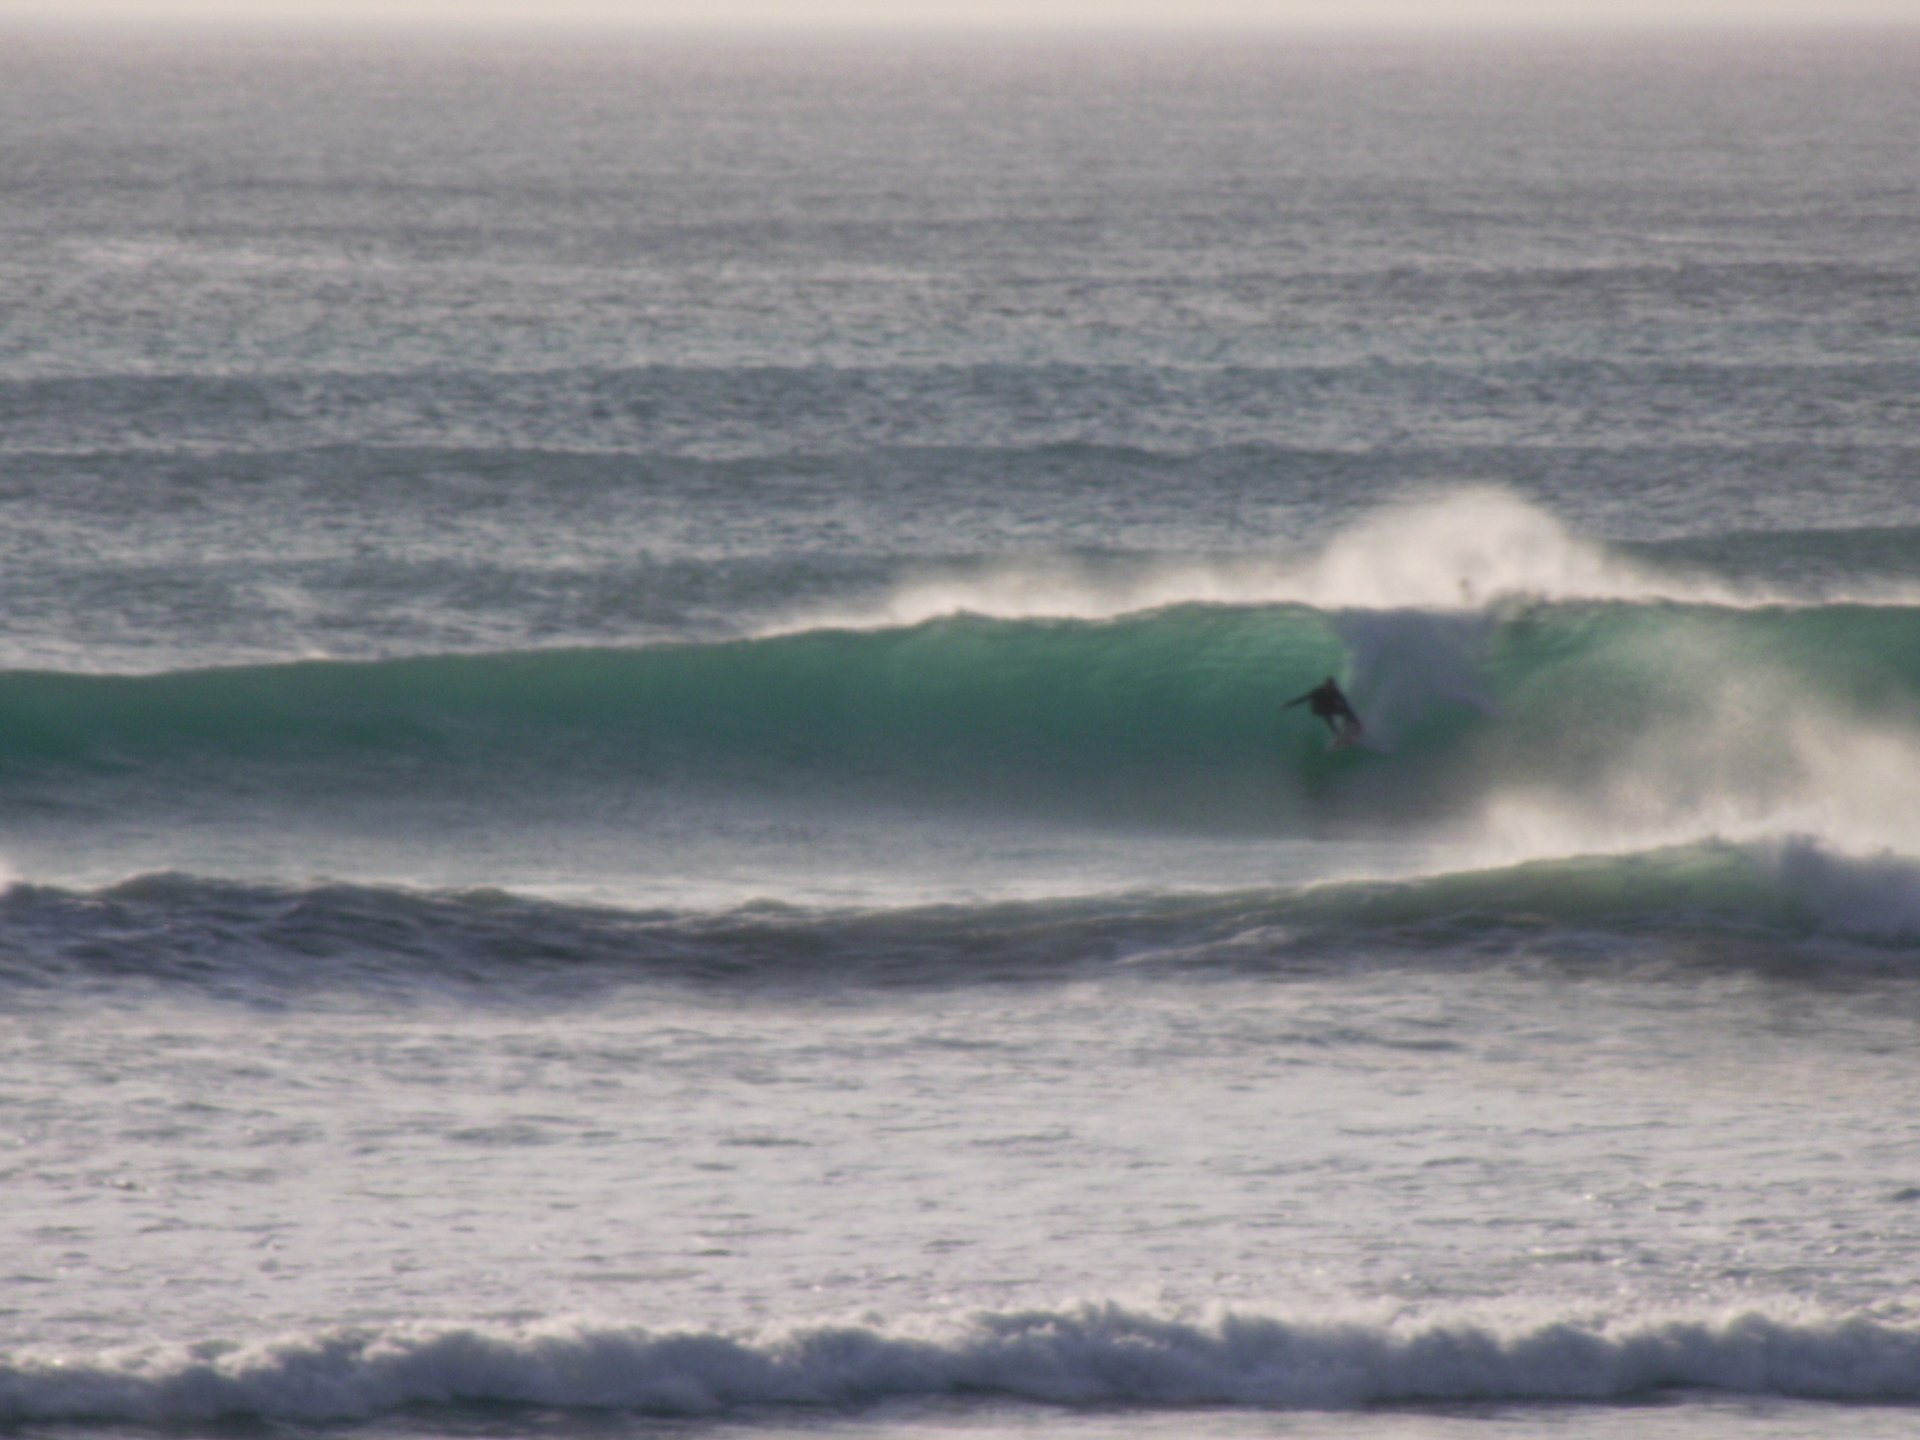 LukeSimmonds_cw's photo of Newquay - Fistral North